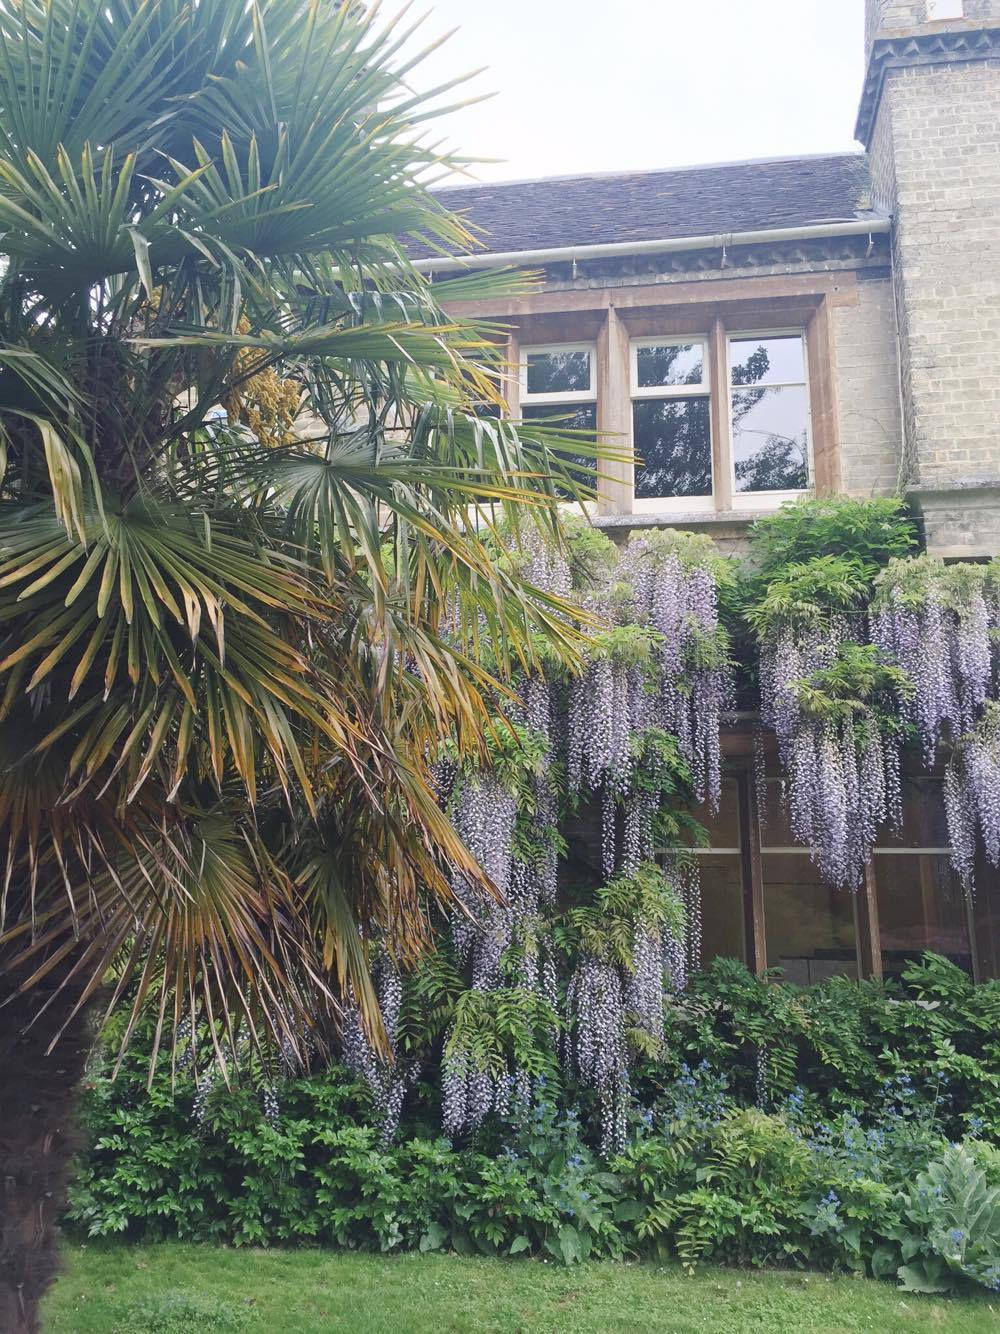 RSPB-Wisteria-House-Palm-Tree